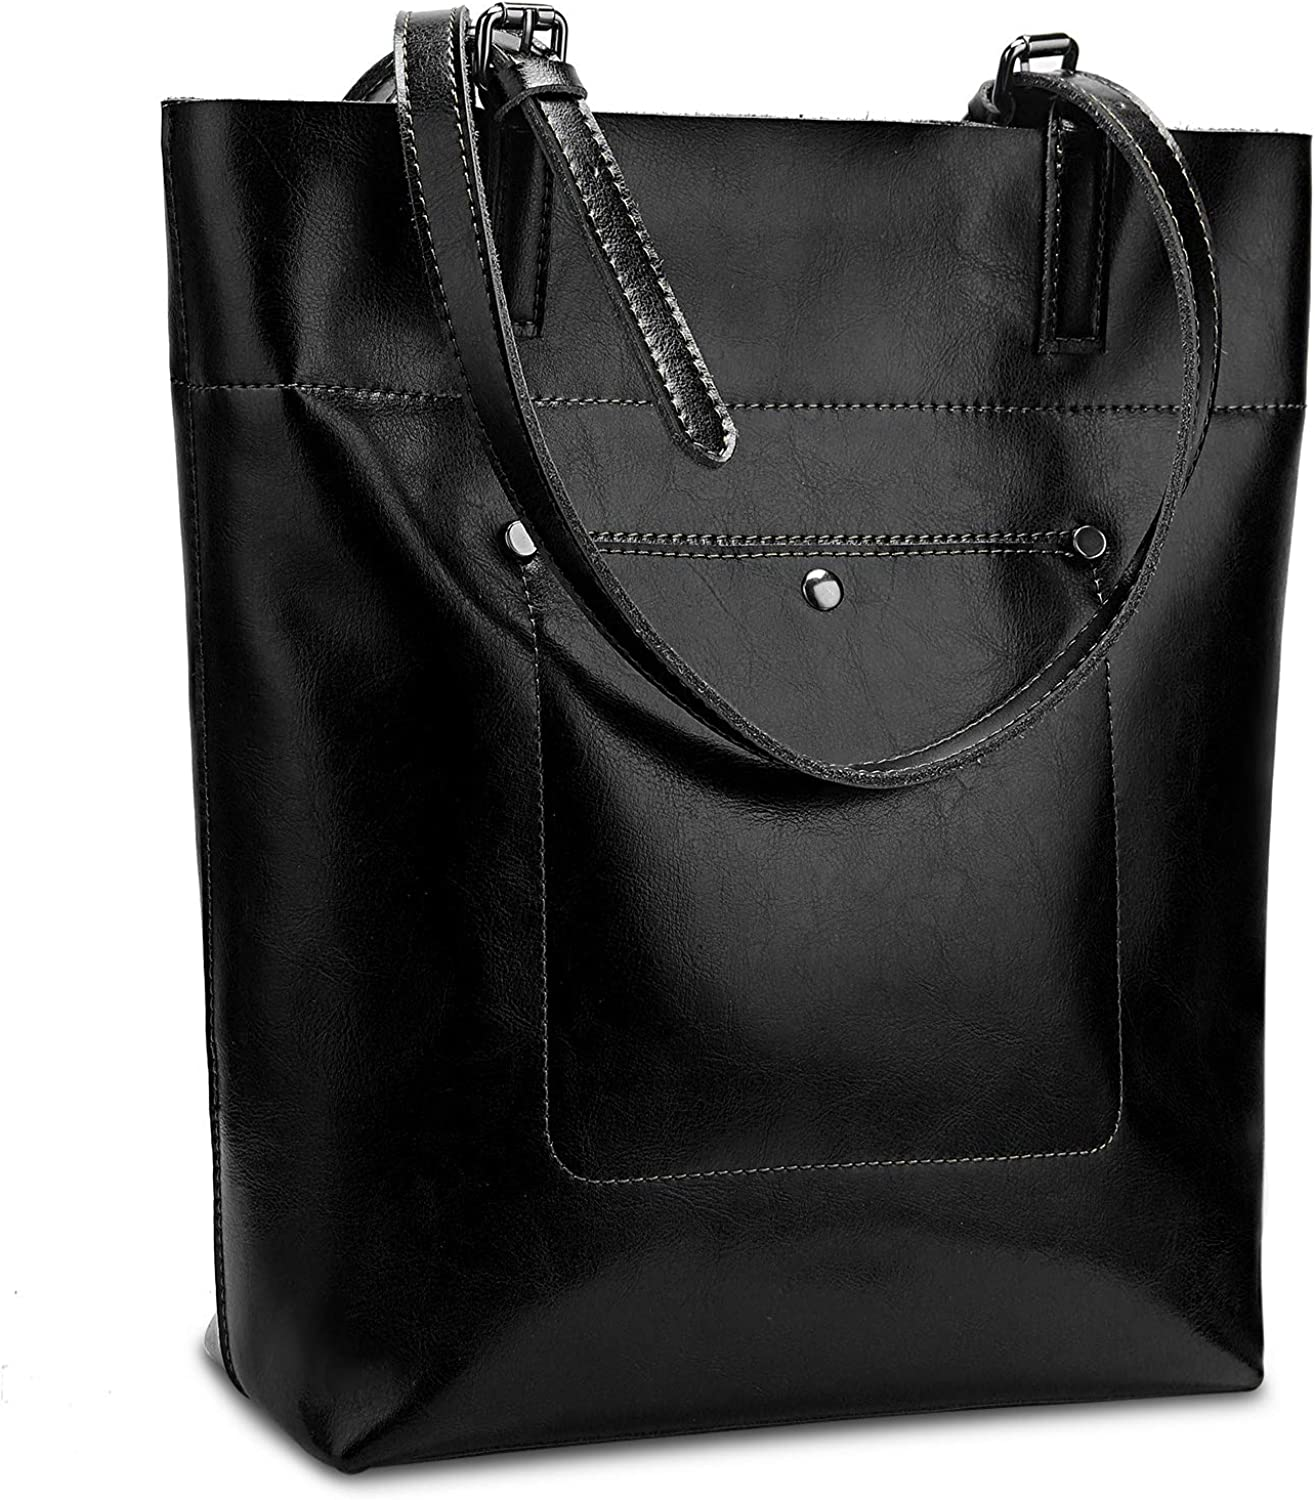 Yaluxe Women's Tote Bag Purse Large Capacity Vintage Style Soft Leather Work Totes Shoulder Bag